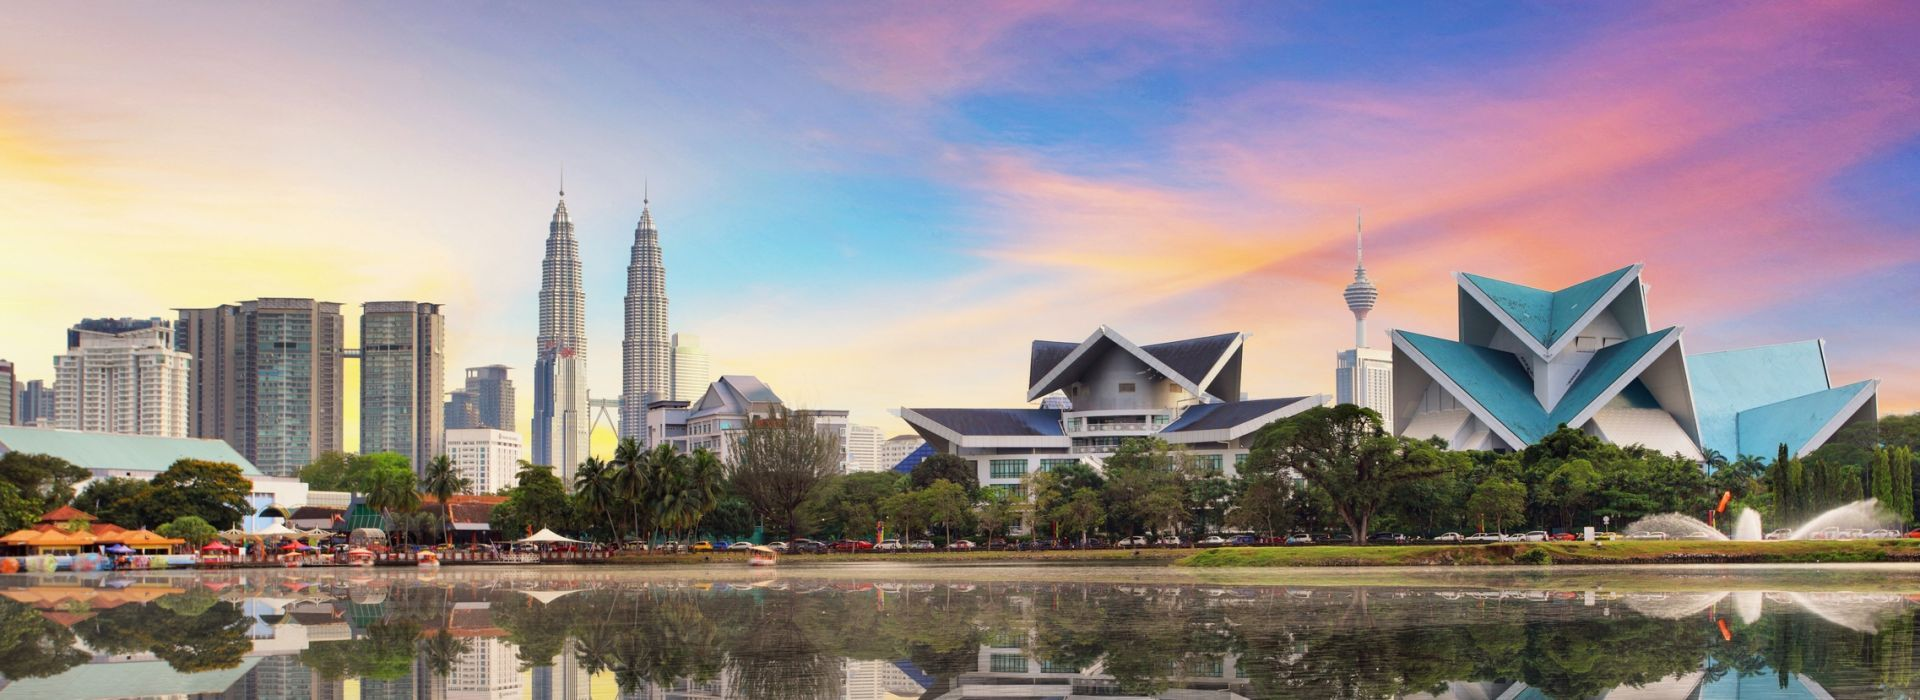 Sightseeing Tours in Malaysia